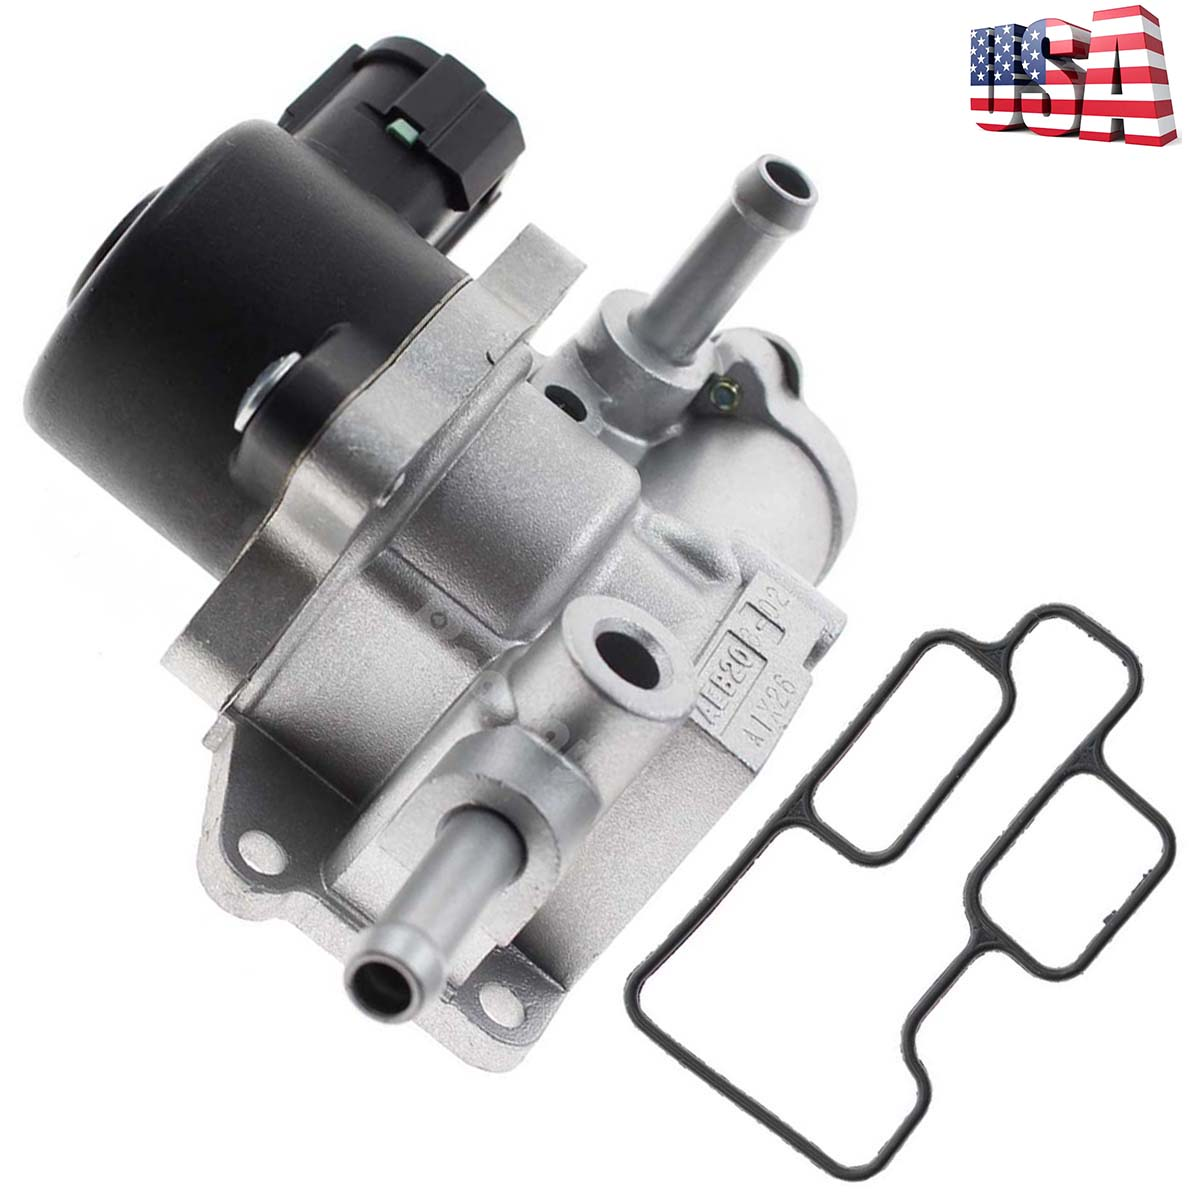 BRAND NEW IDLE AIR CONTROL VALVE FOR 99-01 FORD F150 V6 4.2L